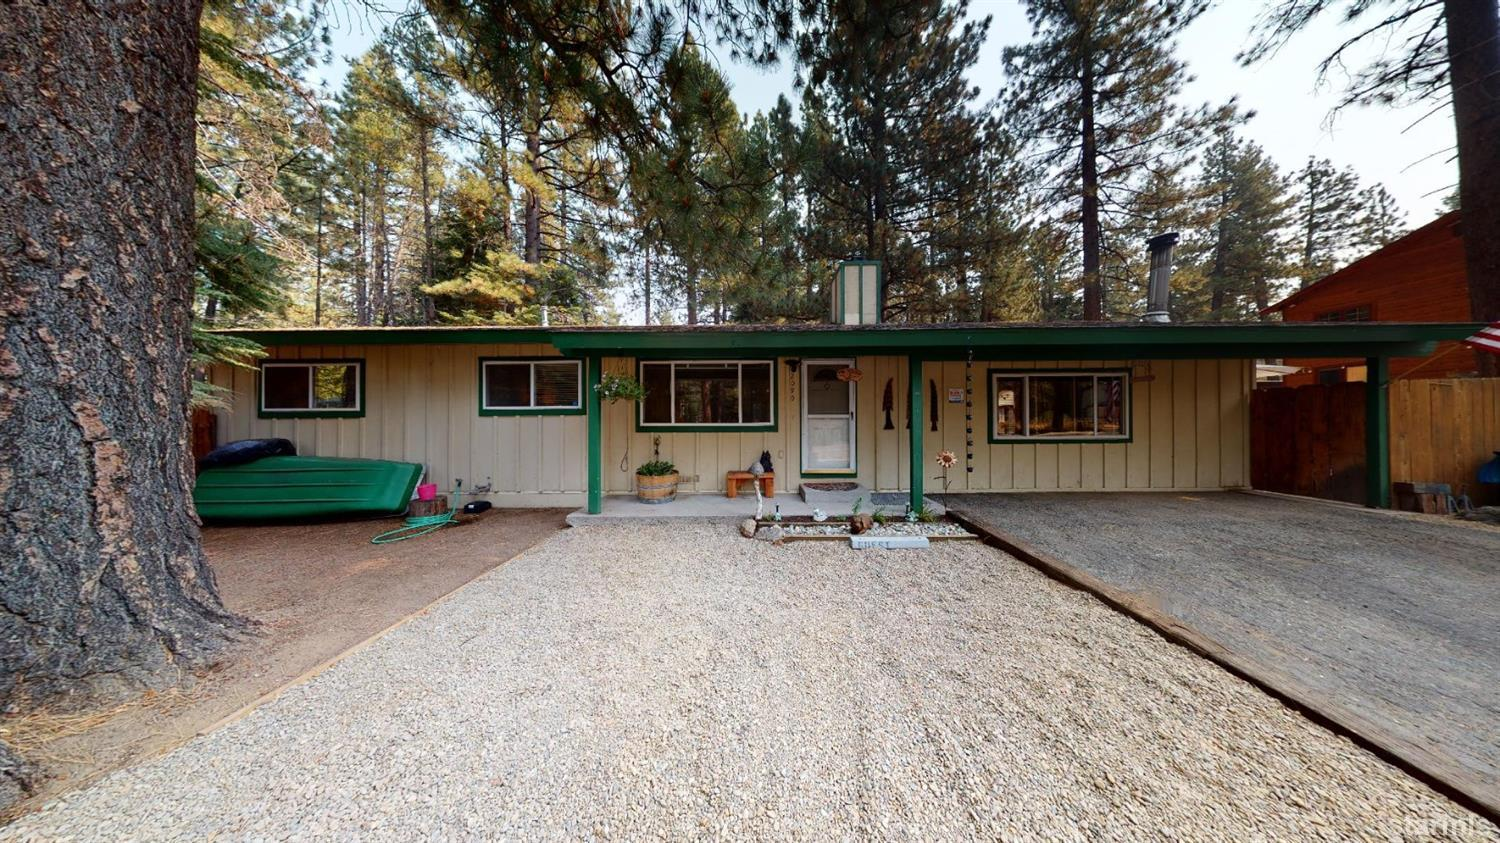 Image for 2090 12th Street, South Lake Tahoe, CA 96150